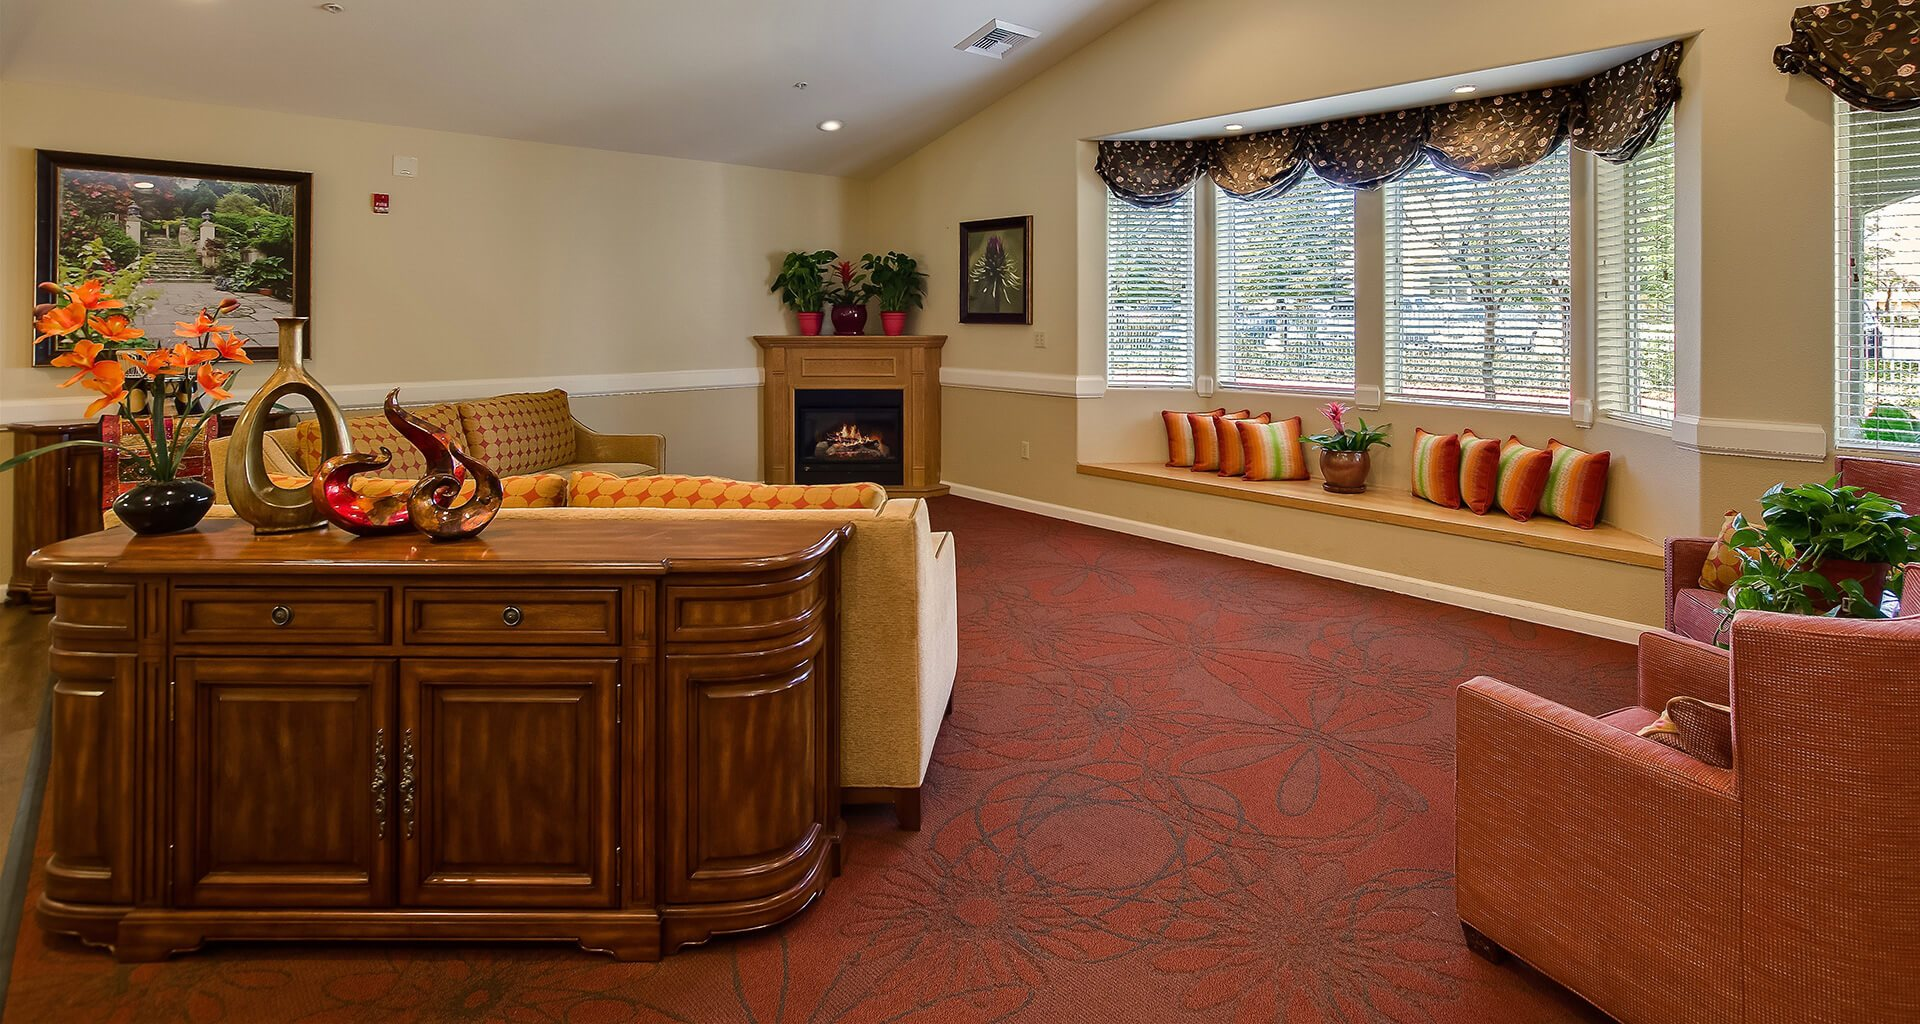 Decorated Lounge Area With Fireplace at Pacifica Senior Living Vacaville, Vacaville, CA, 95687